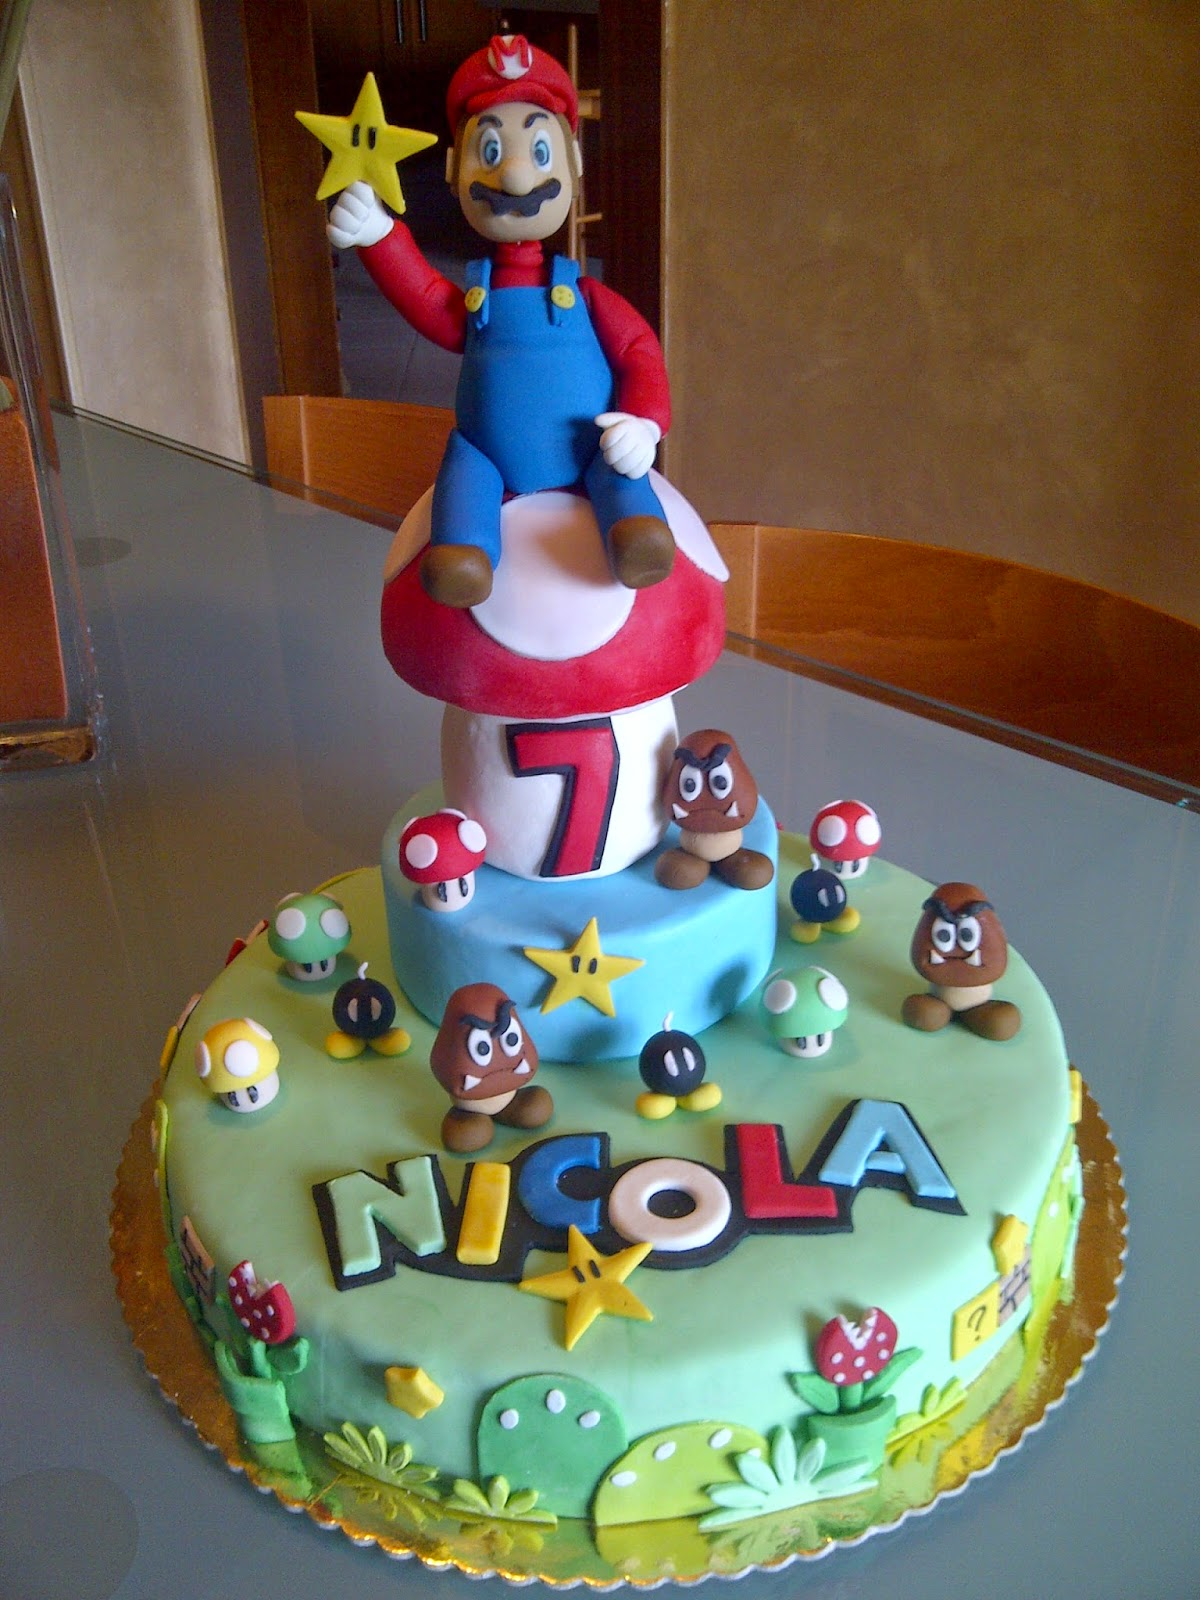 Art Sugar Crystals Torta Super Mario Bross Pdz